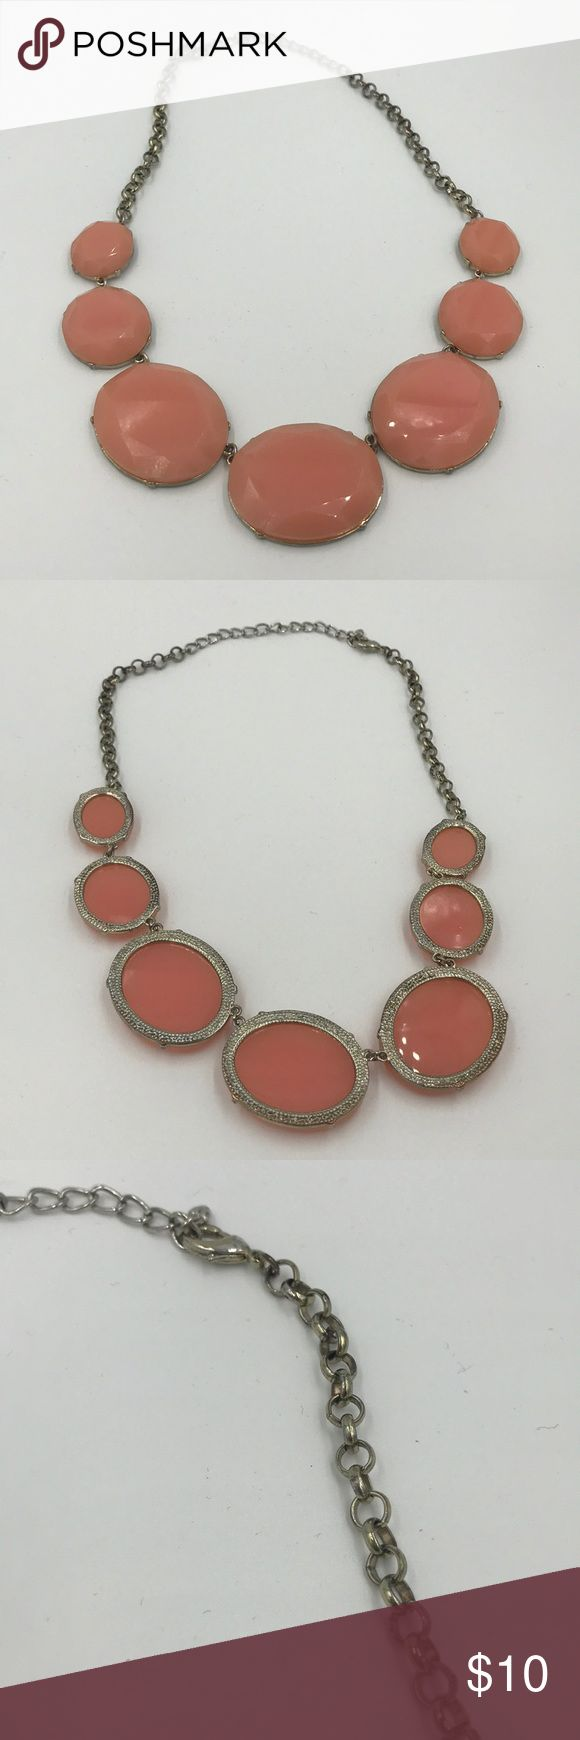 Bauble Bar Pink/Peach Necklace Pre-owned. Note there is some oxidation on the chain. baublebar Jewelry Necklaces